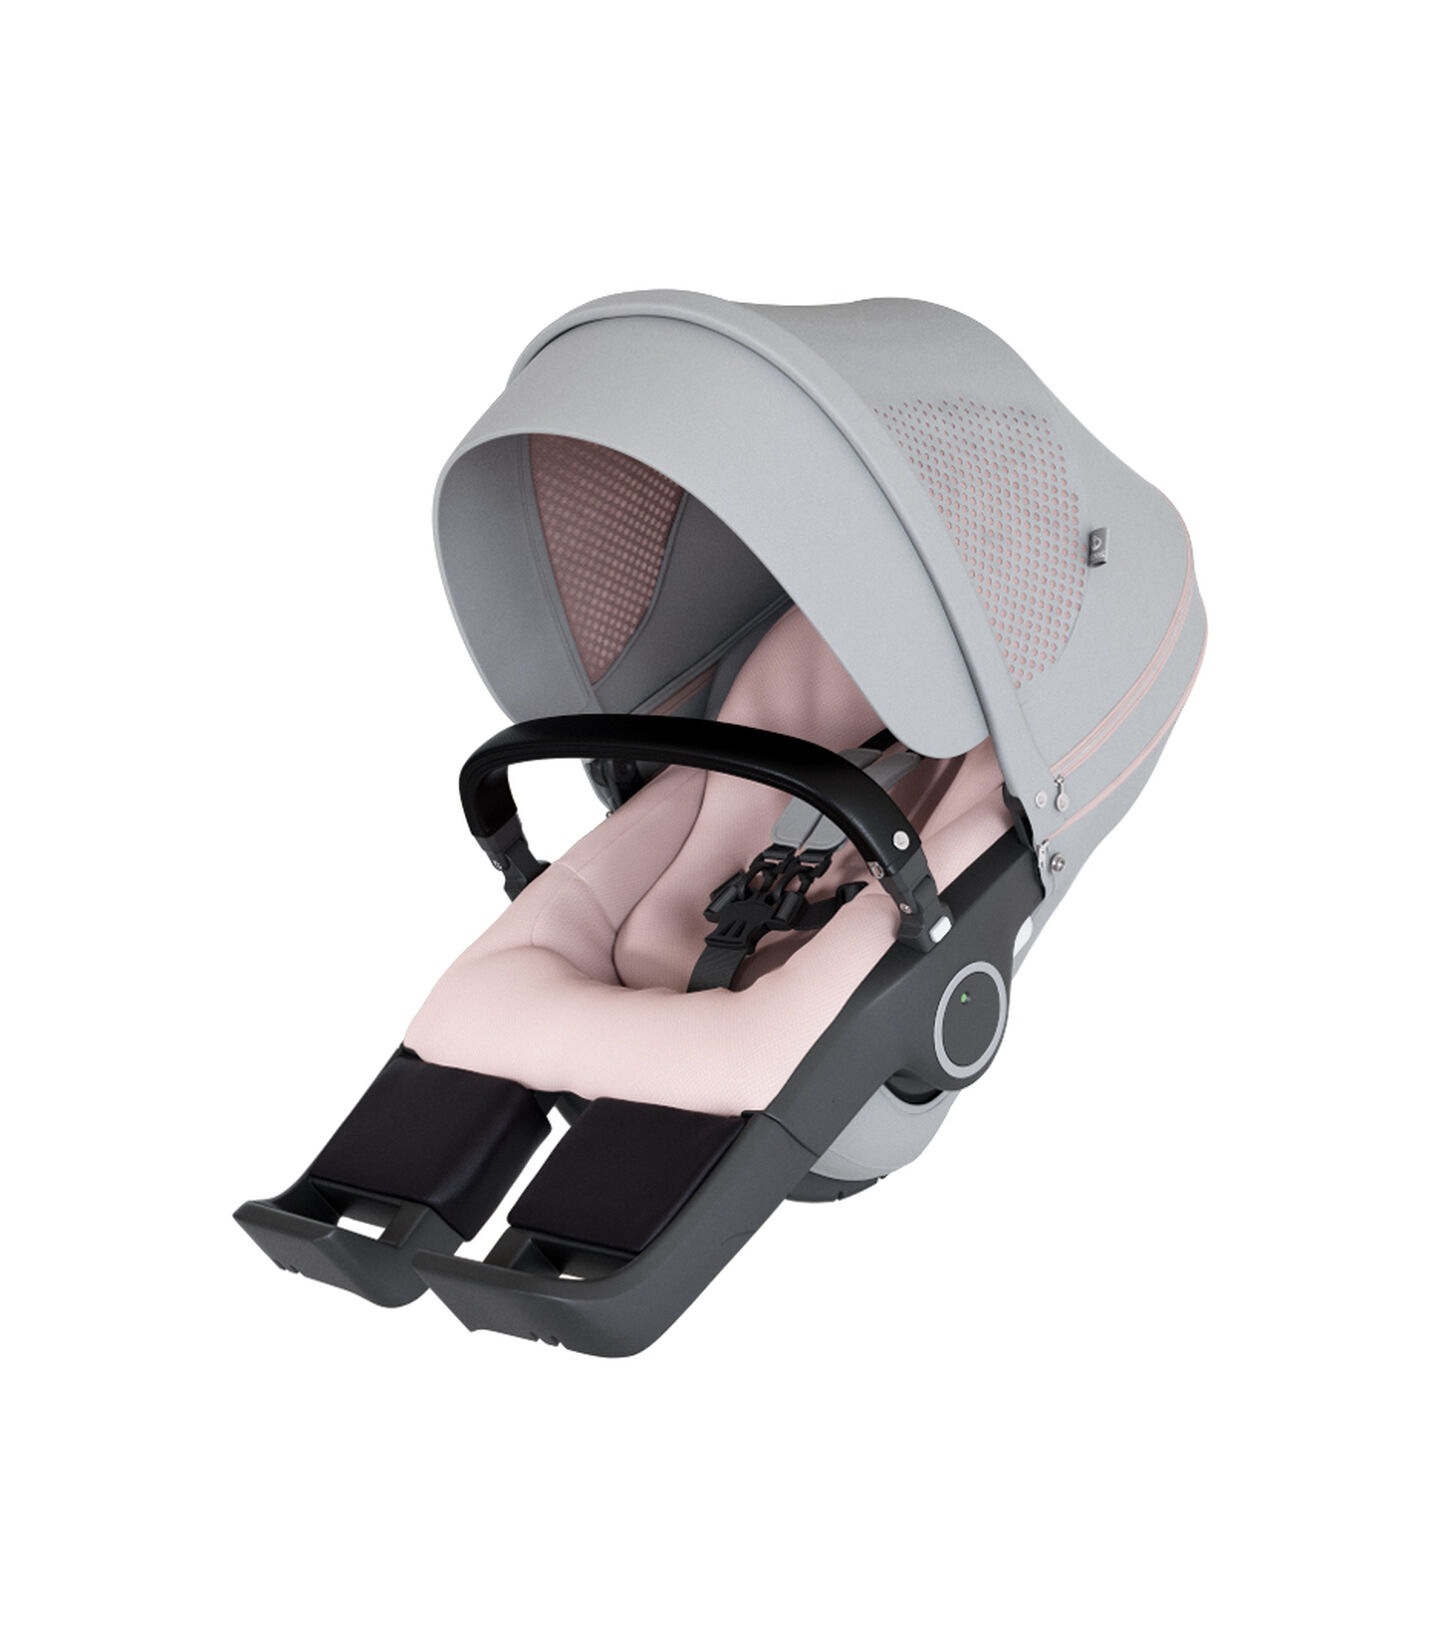 Stokke® Stroller Seat Complete Athleisure Pink, Athleisure Pink, mainview